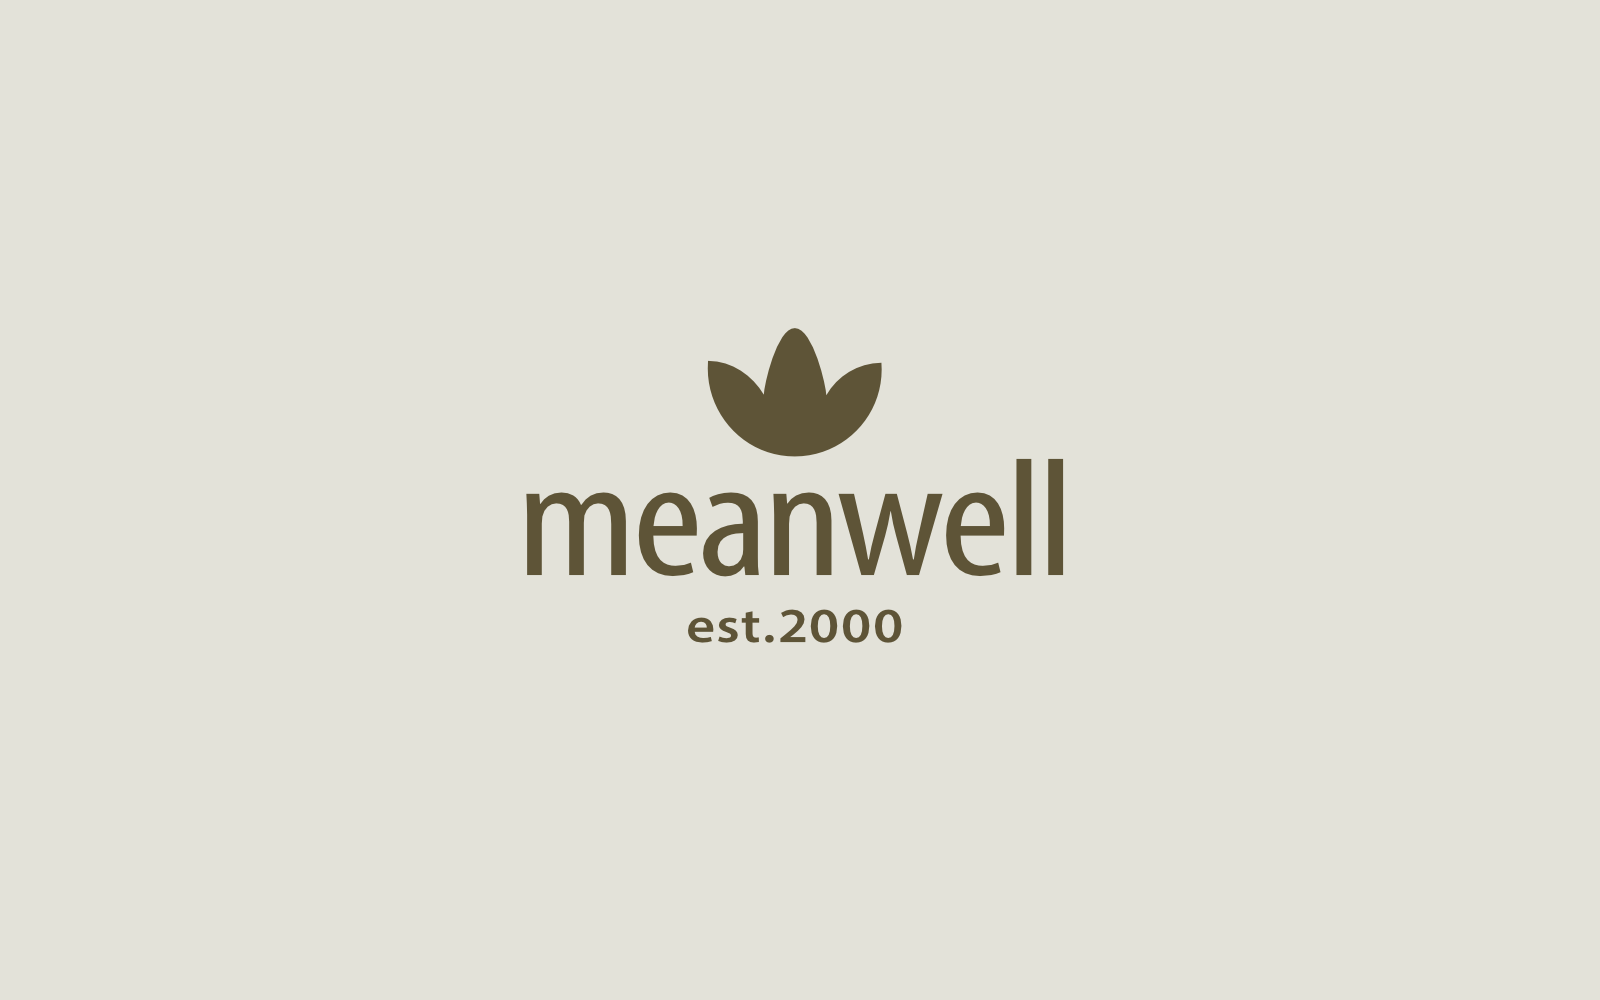 Meanwell Identity